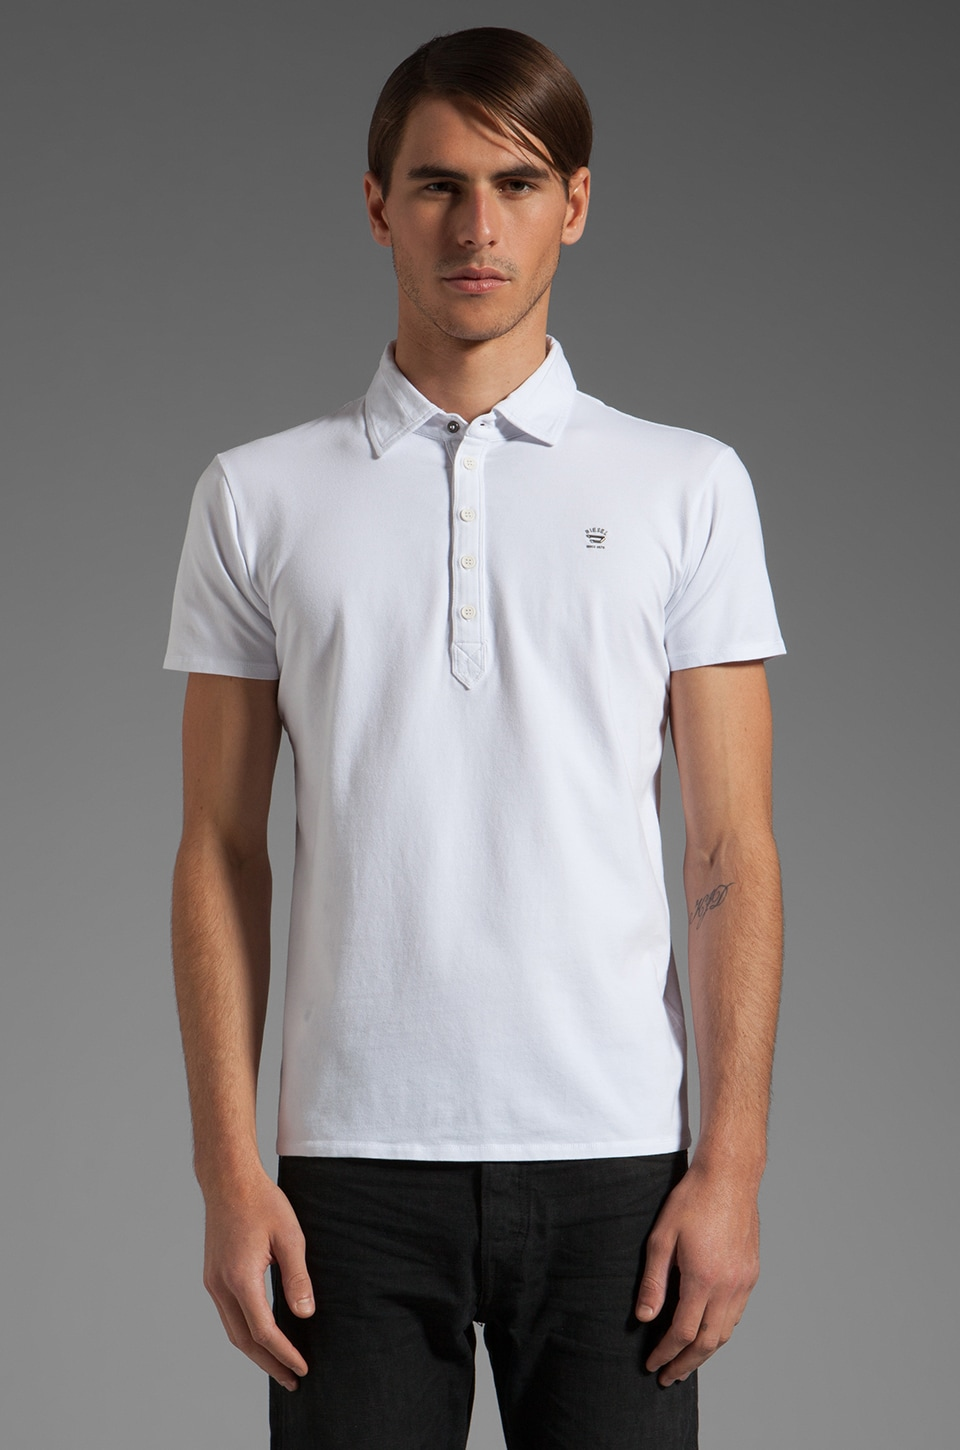 Diesel Alnilamy Polo in White